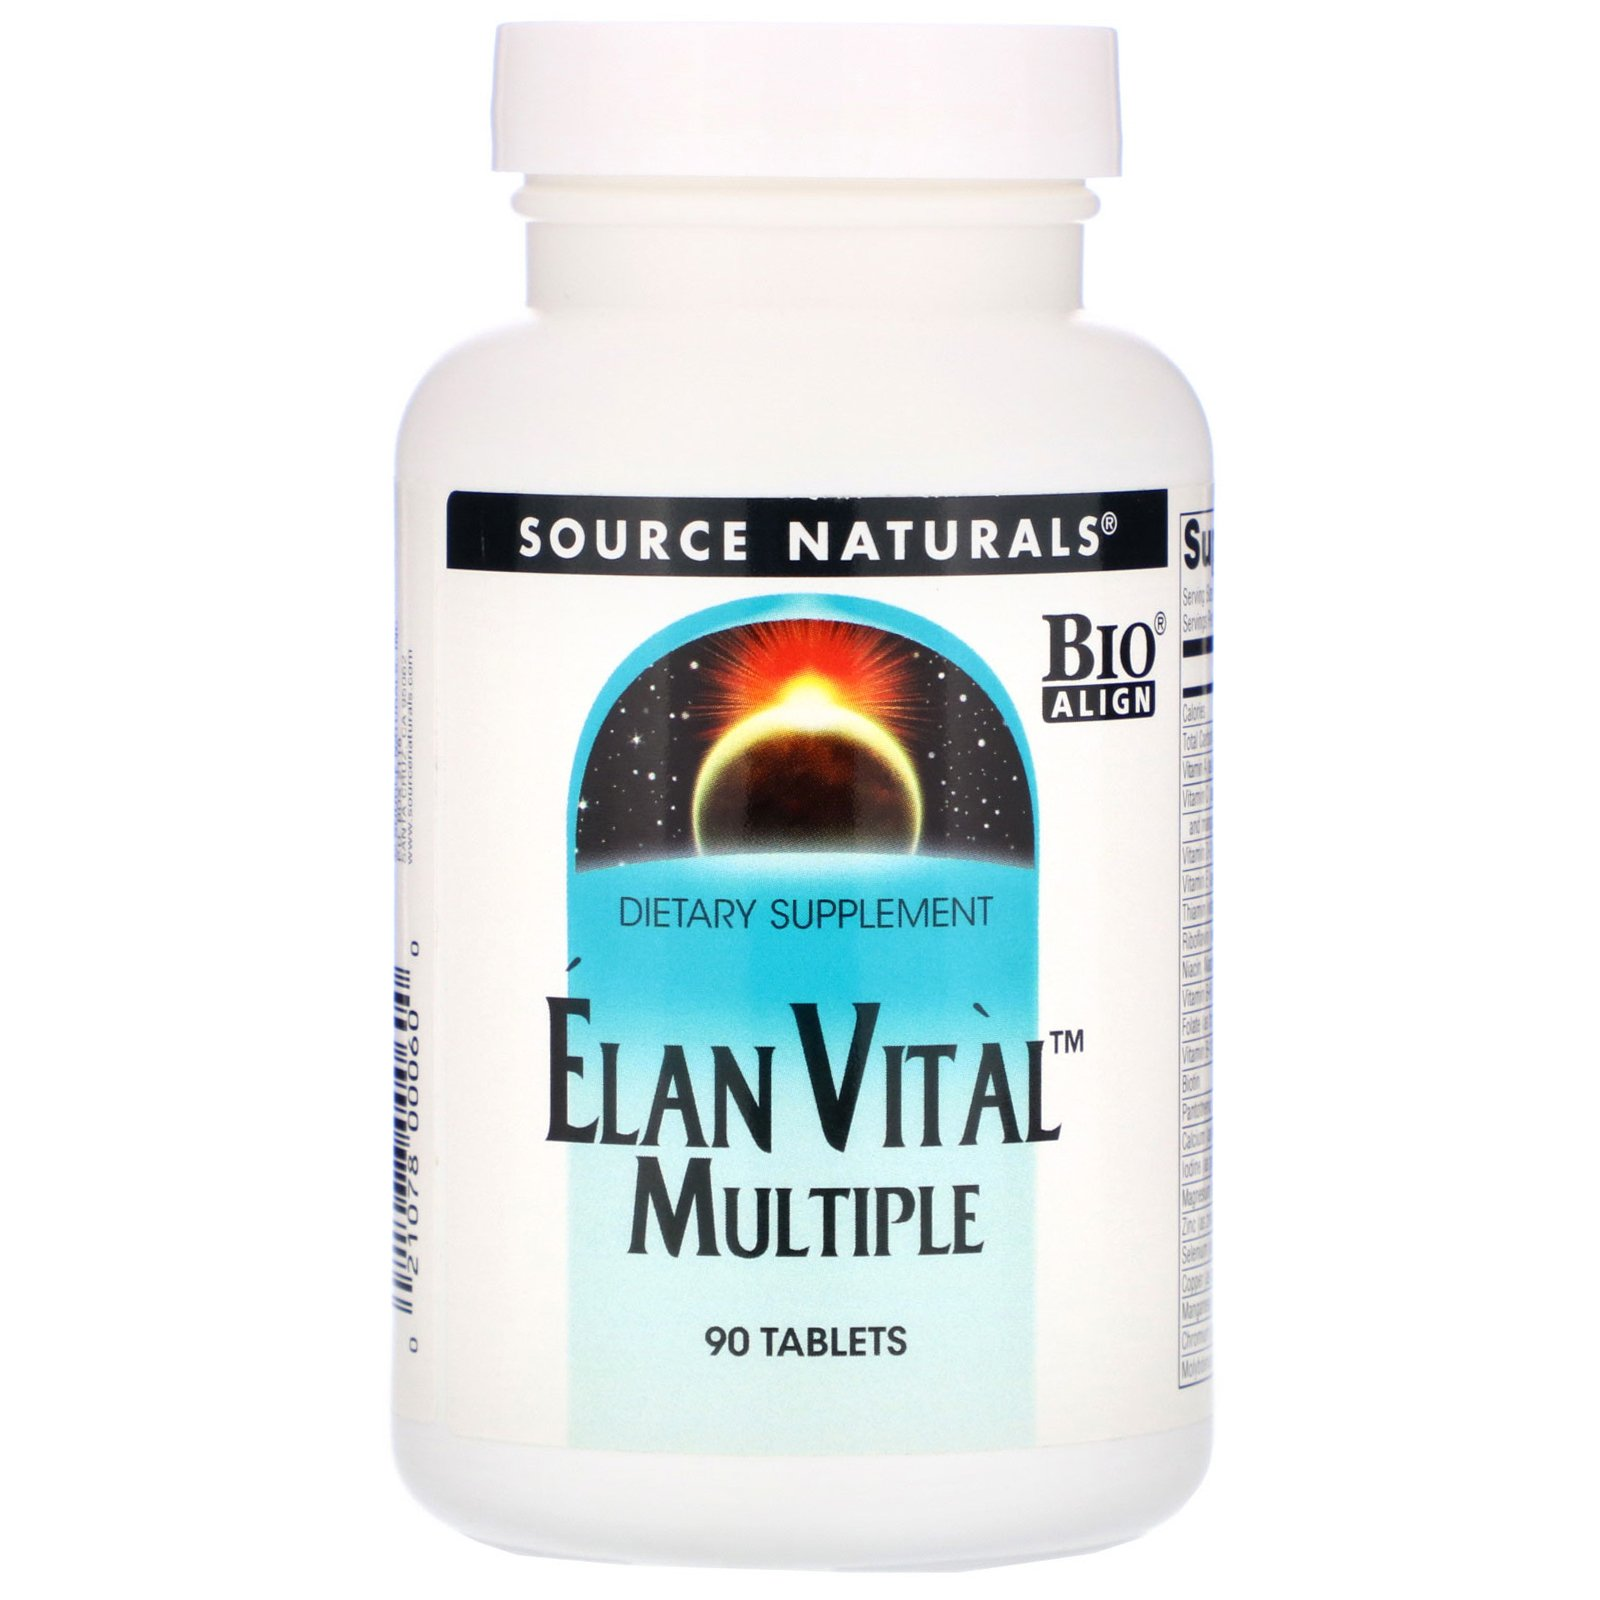 Source Naturals, Elan Vital Multiple, 90 Tablets